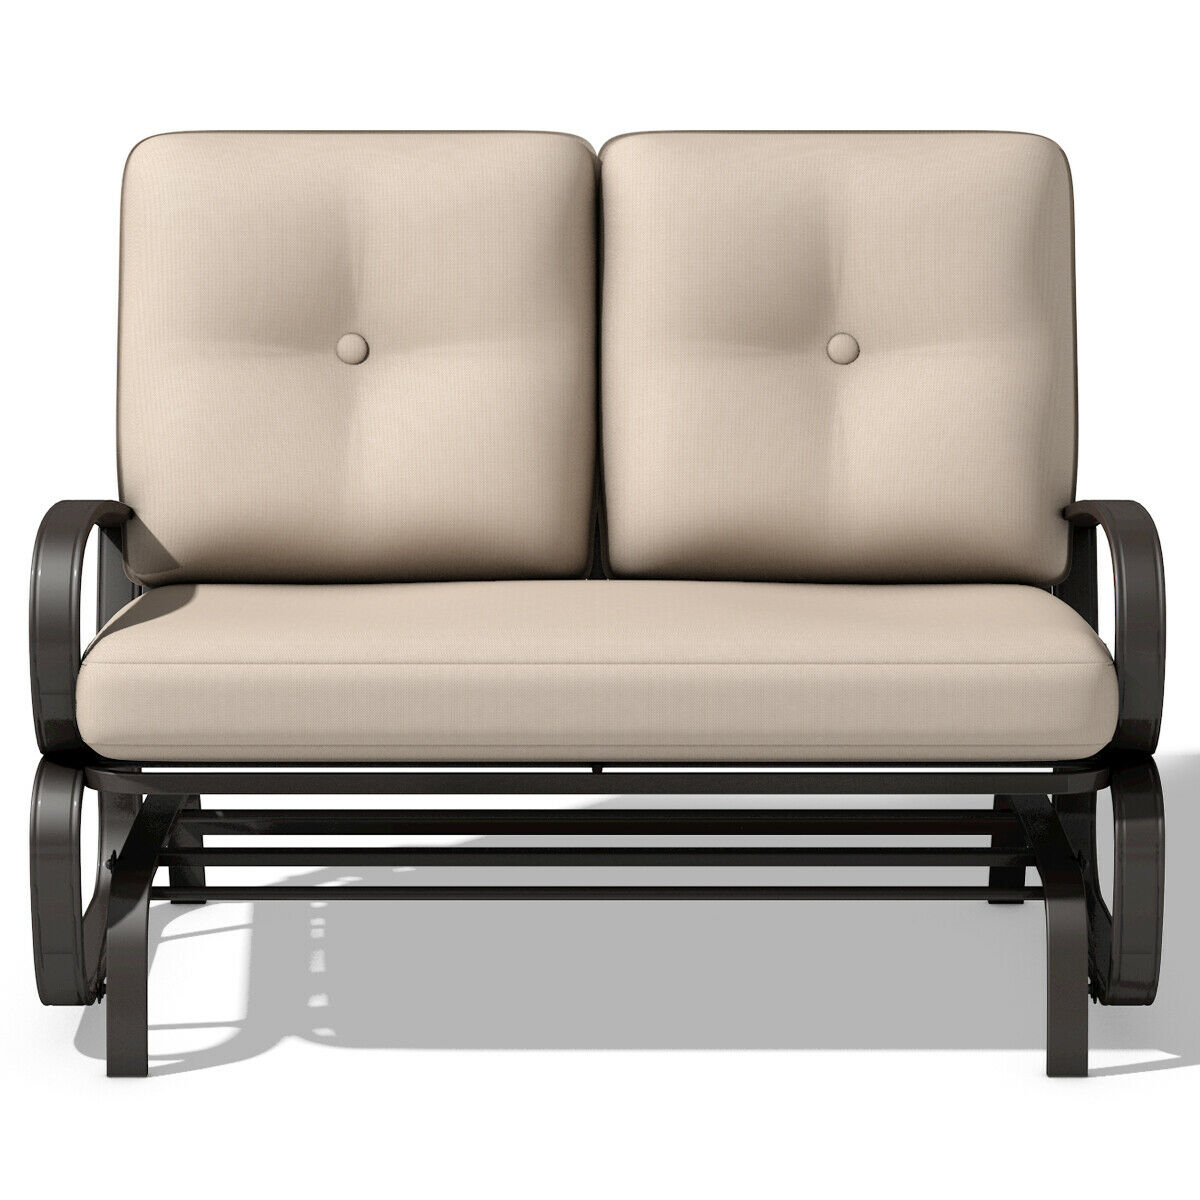 Costway Glider Outdoor Patio Rocking Bench Loveseat Within Outdoor Loveseat Gliders With Cushion (View 22 of 25)